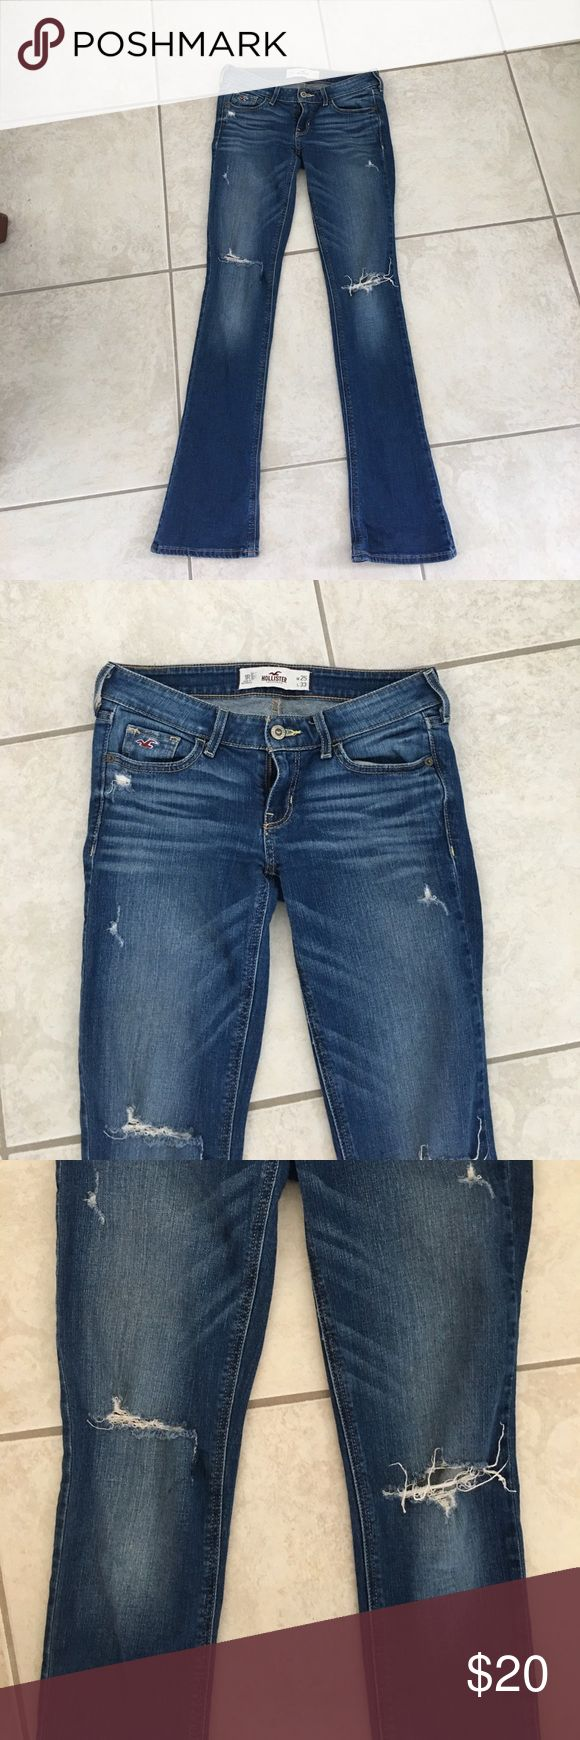 Hollister boot cut jeans Hollister boot cut jeans, size 1S but fits like a 1L Hollister Jeans Boot Cut